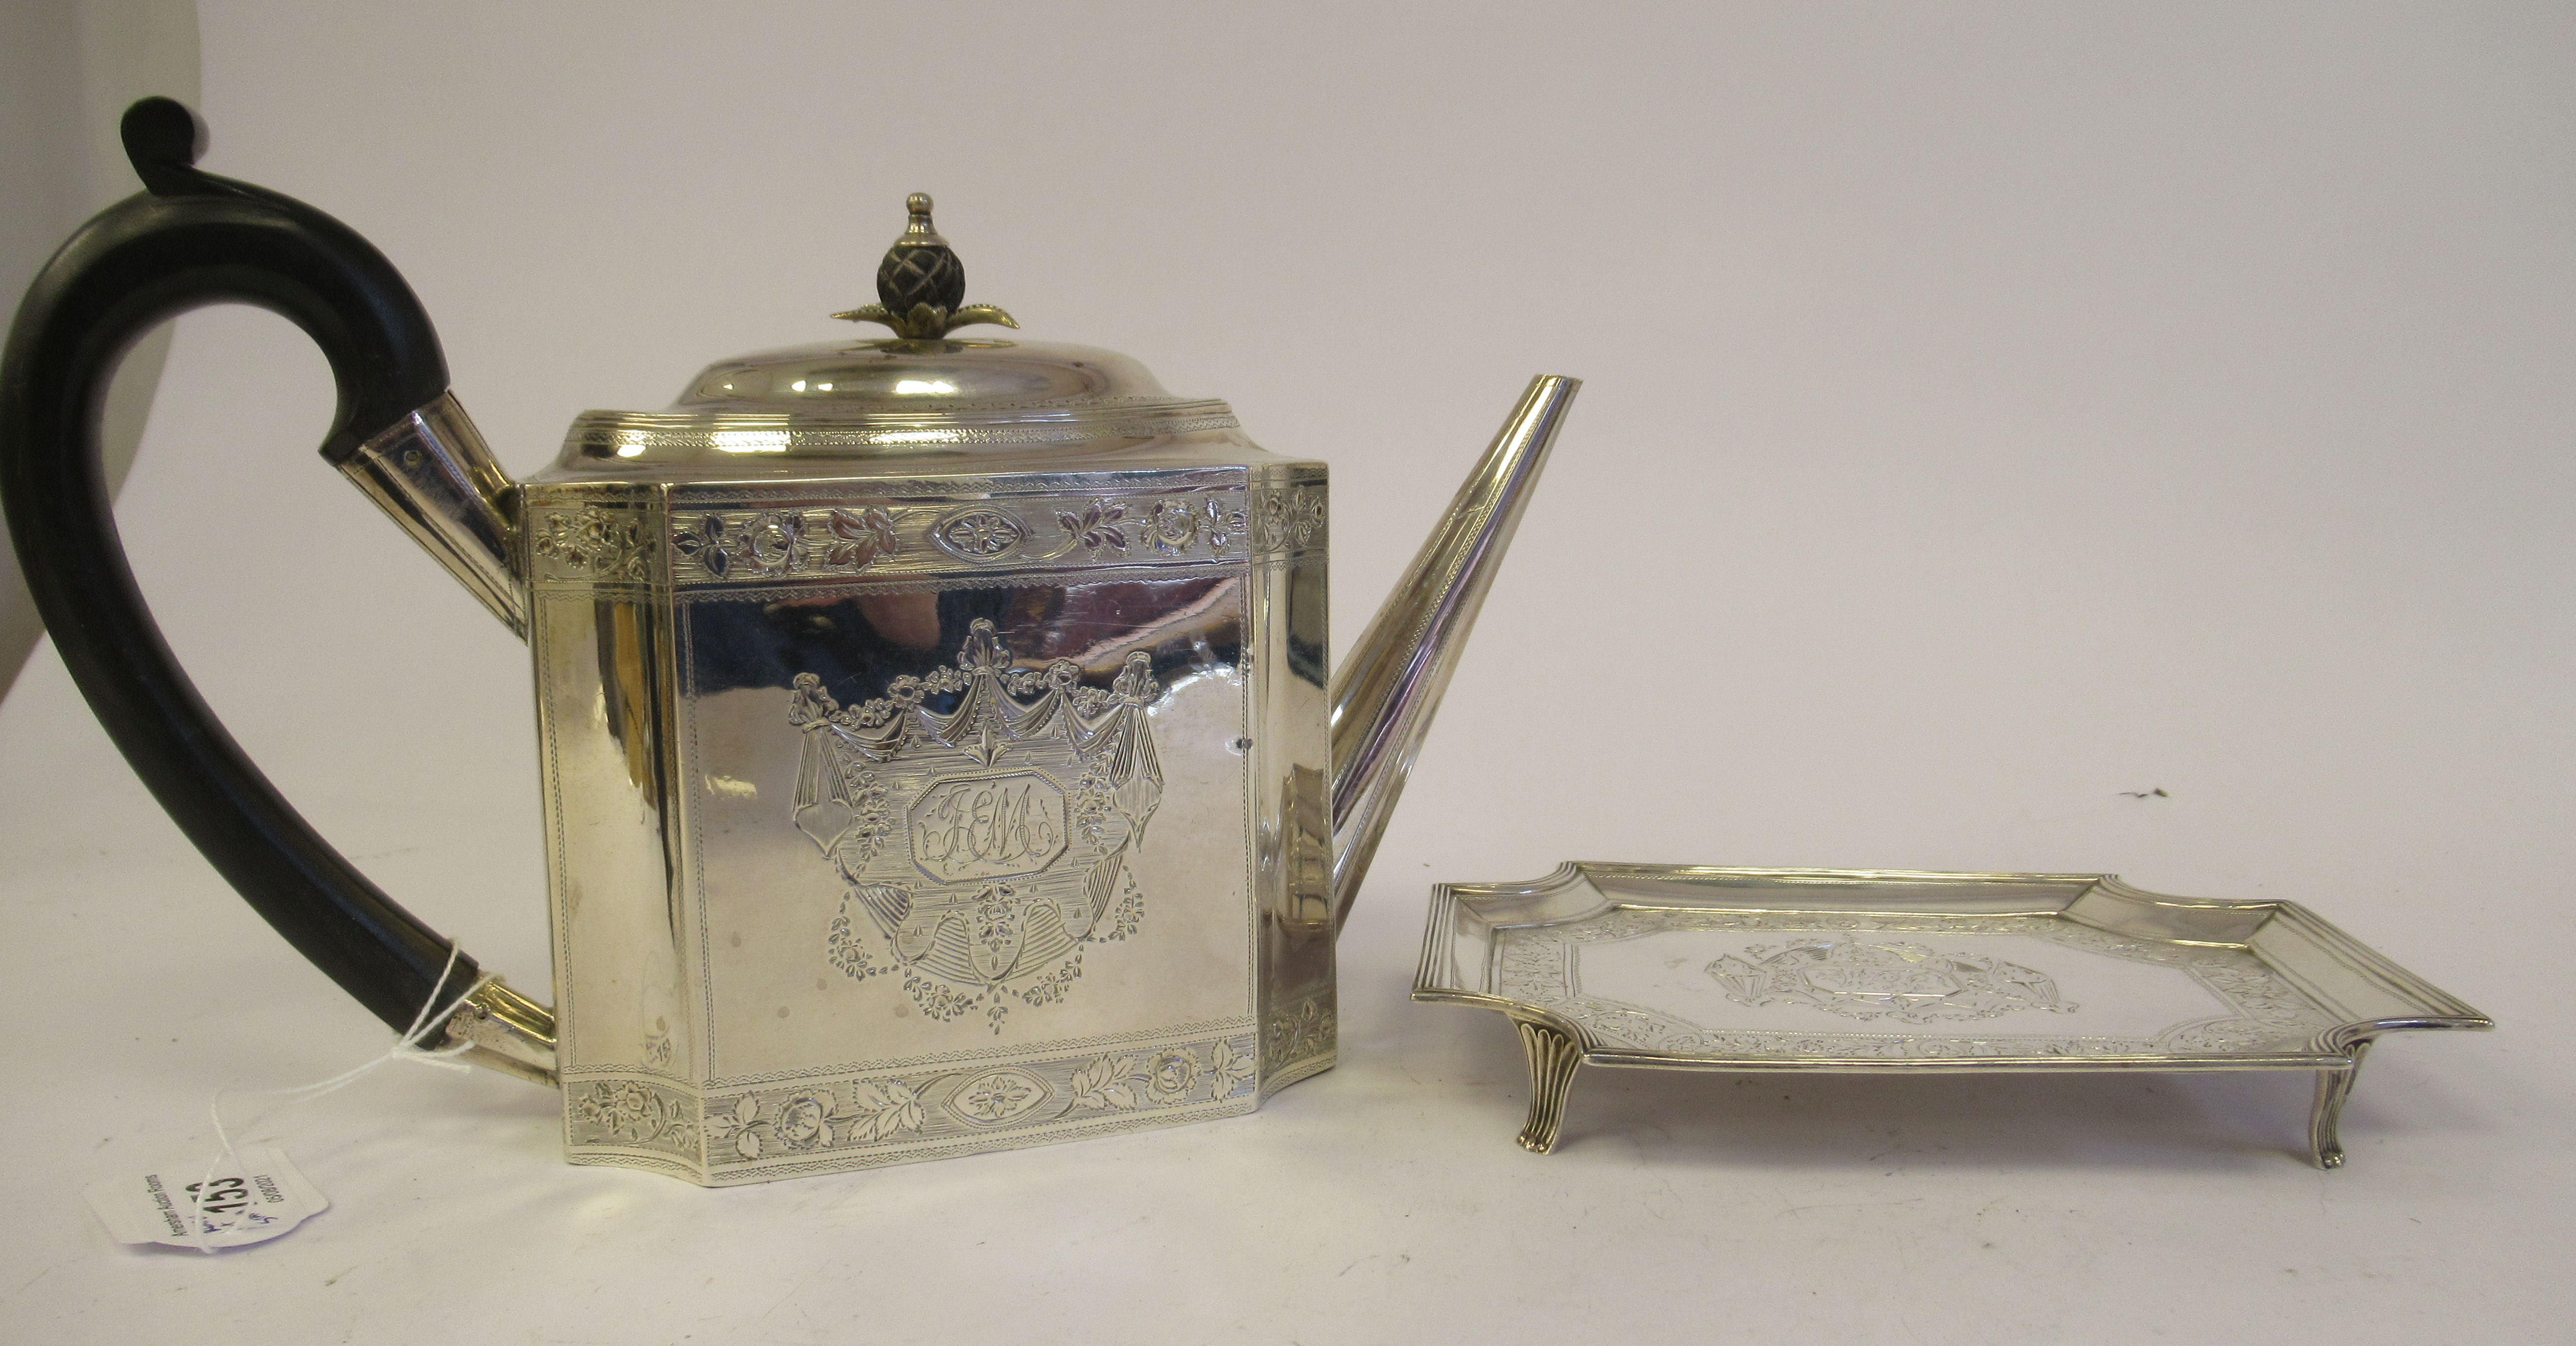 A George III silver teapot of straight sided, incurved box design, having an angled straight, - Image 2 of 9